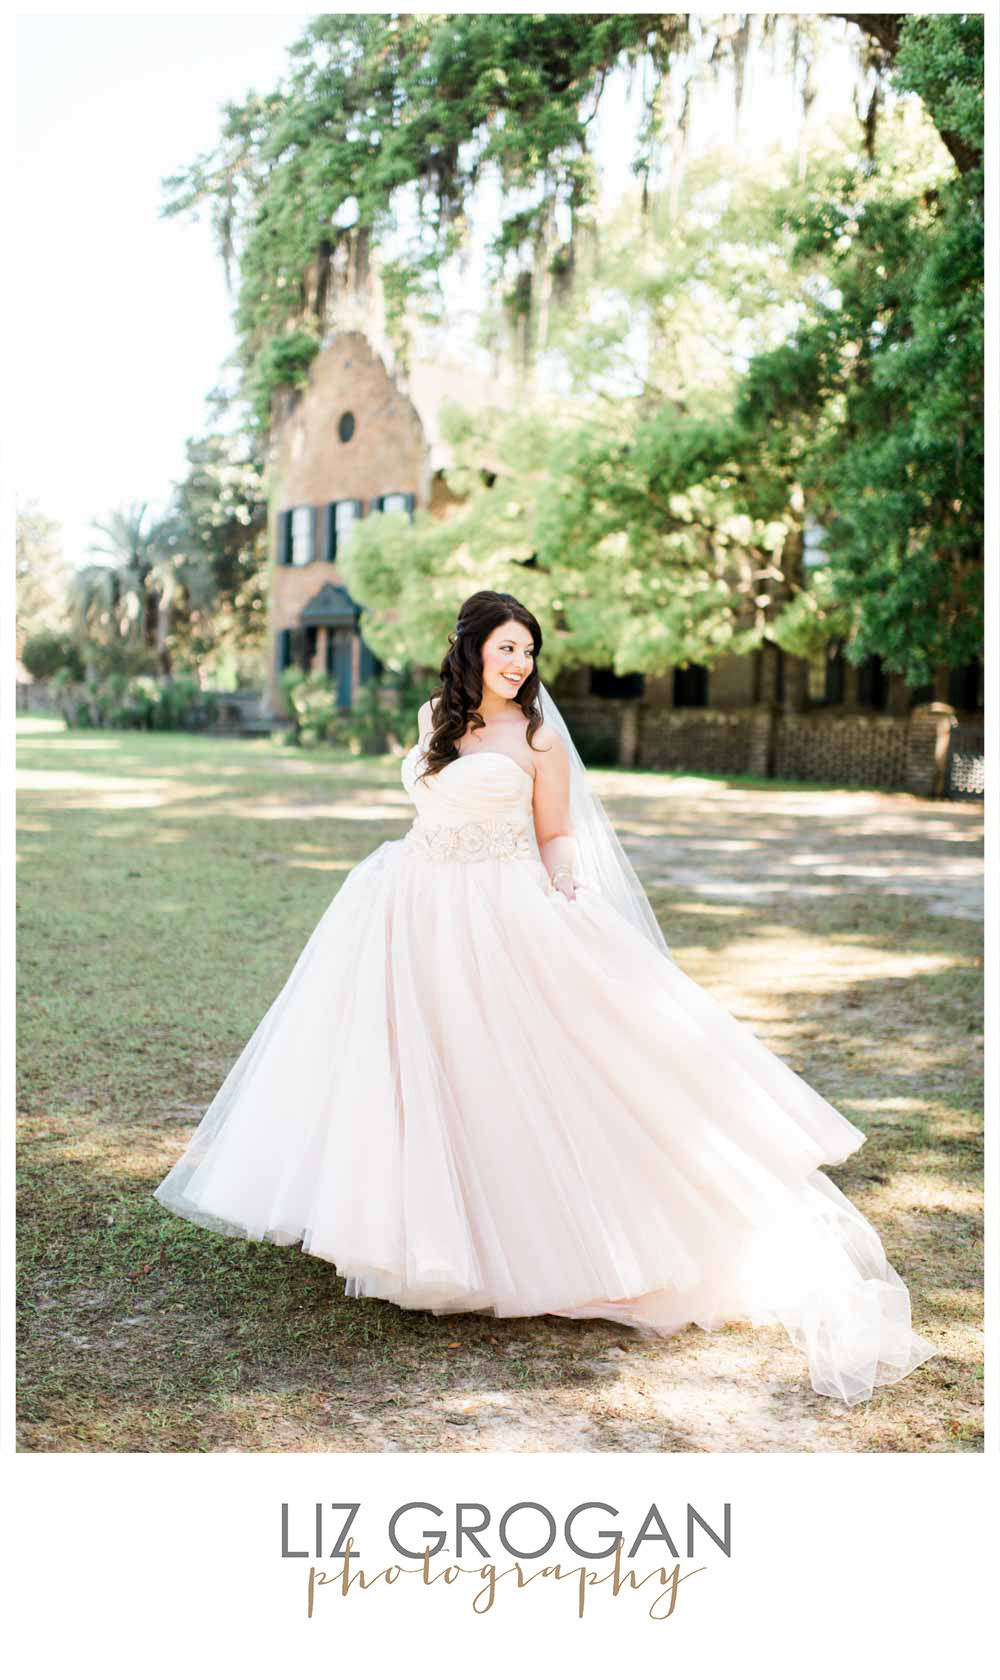 middleton place wedding, charleston wedding photographer, north carolina wedding photographer